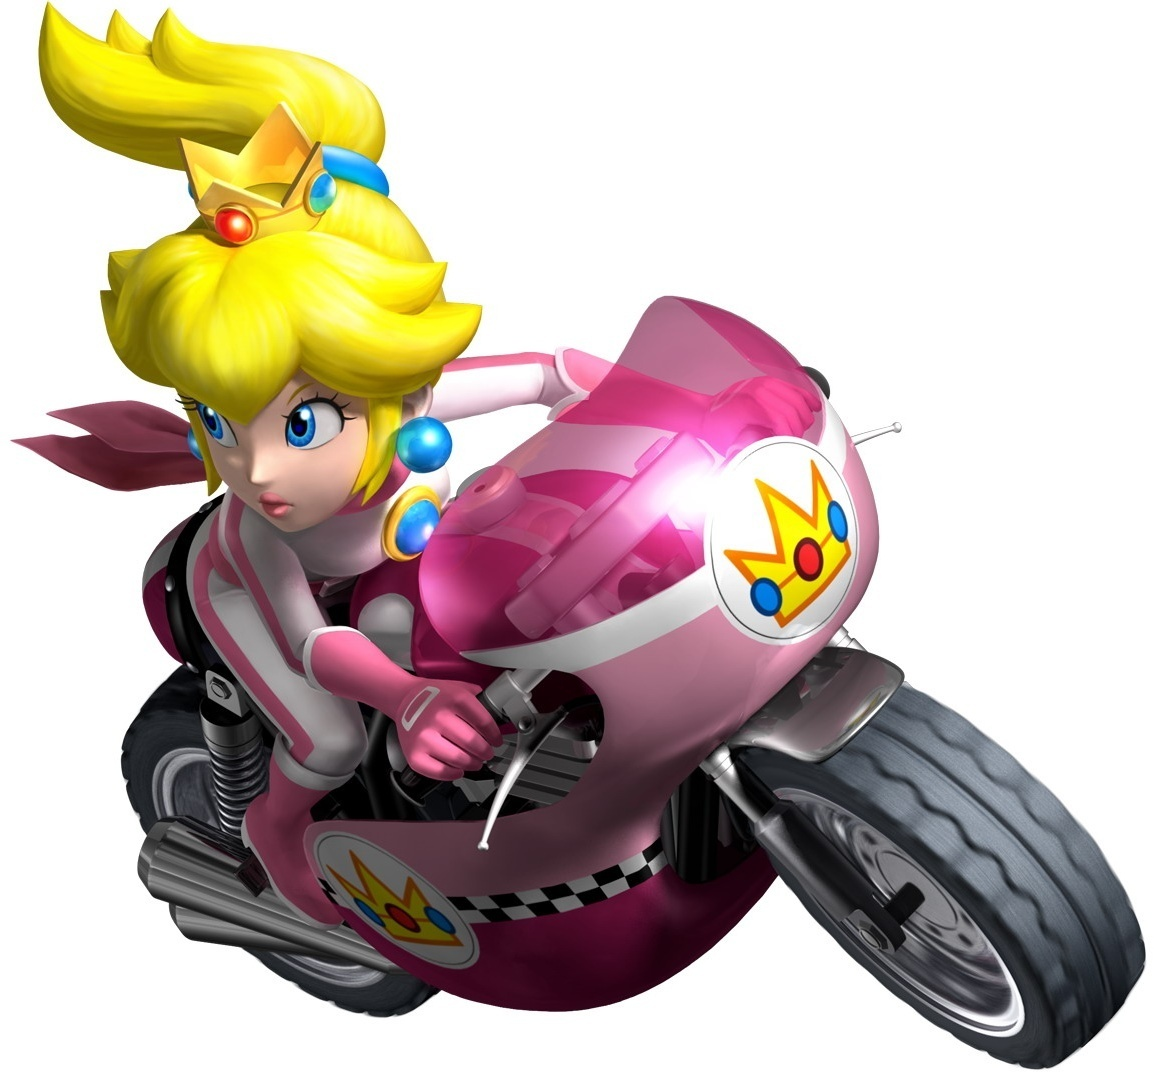 peach and daisy images mario kart wii hd wallpaper and